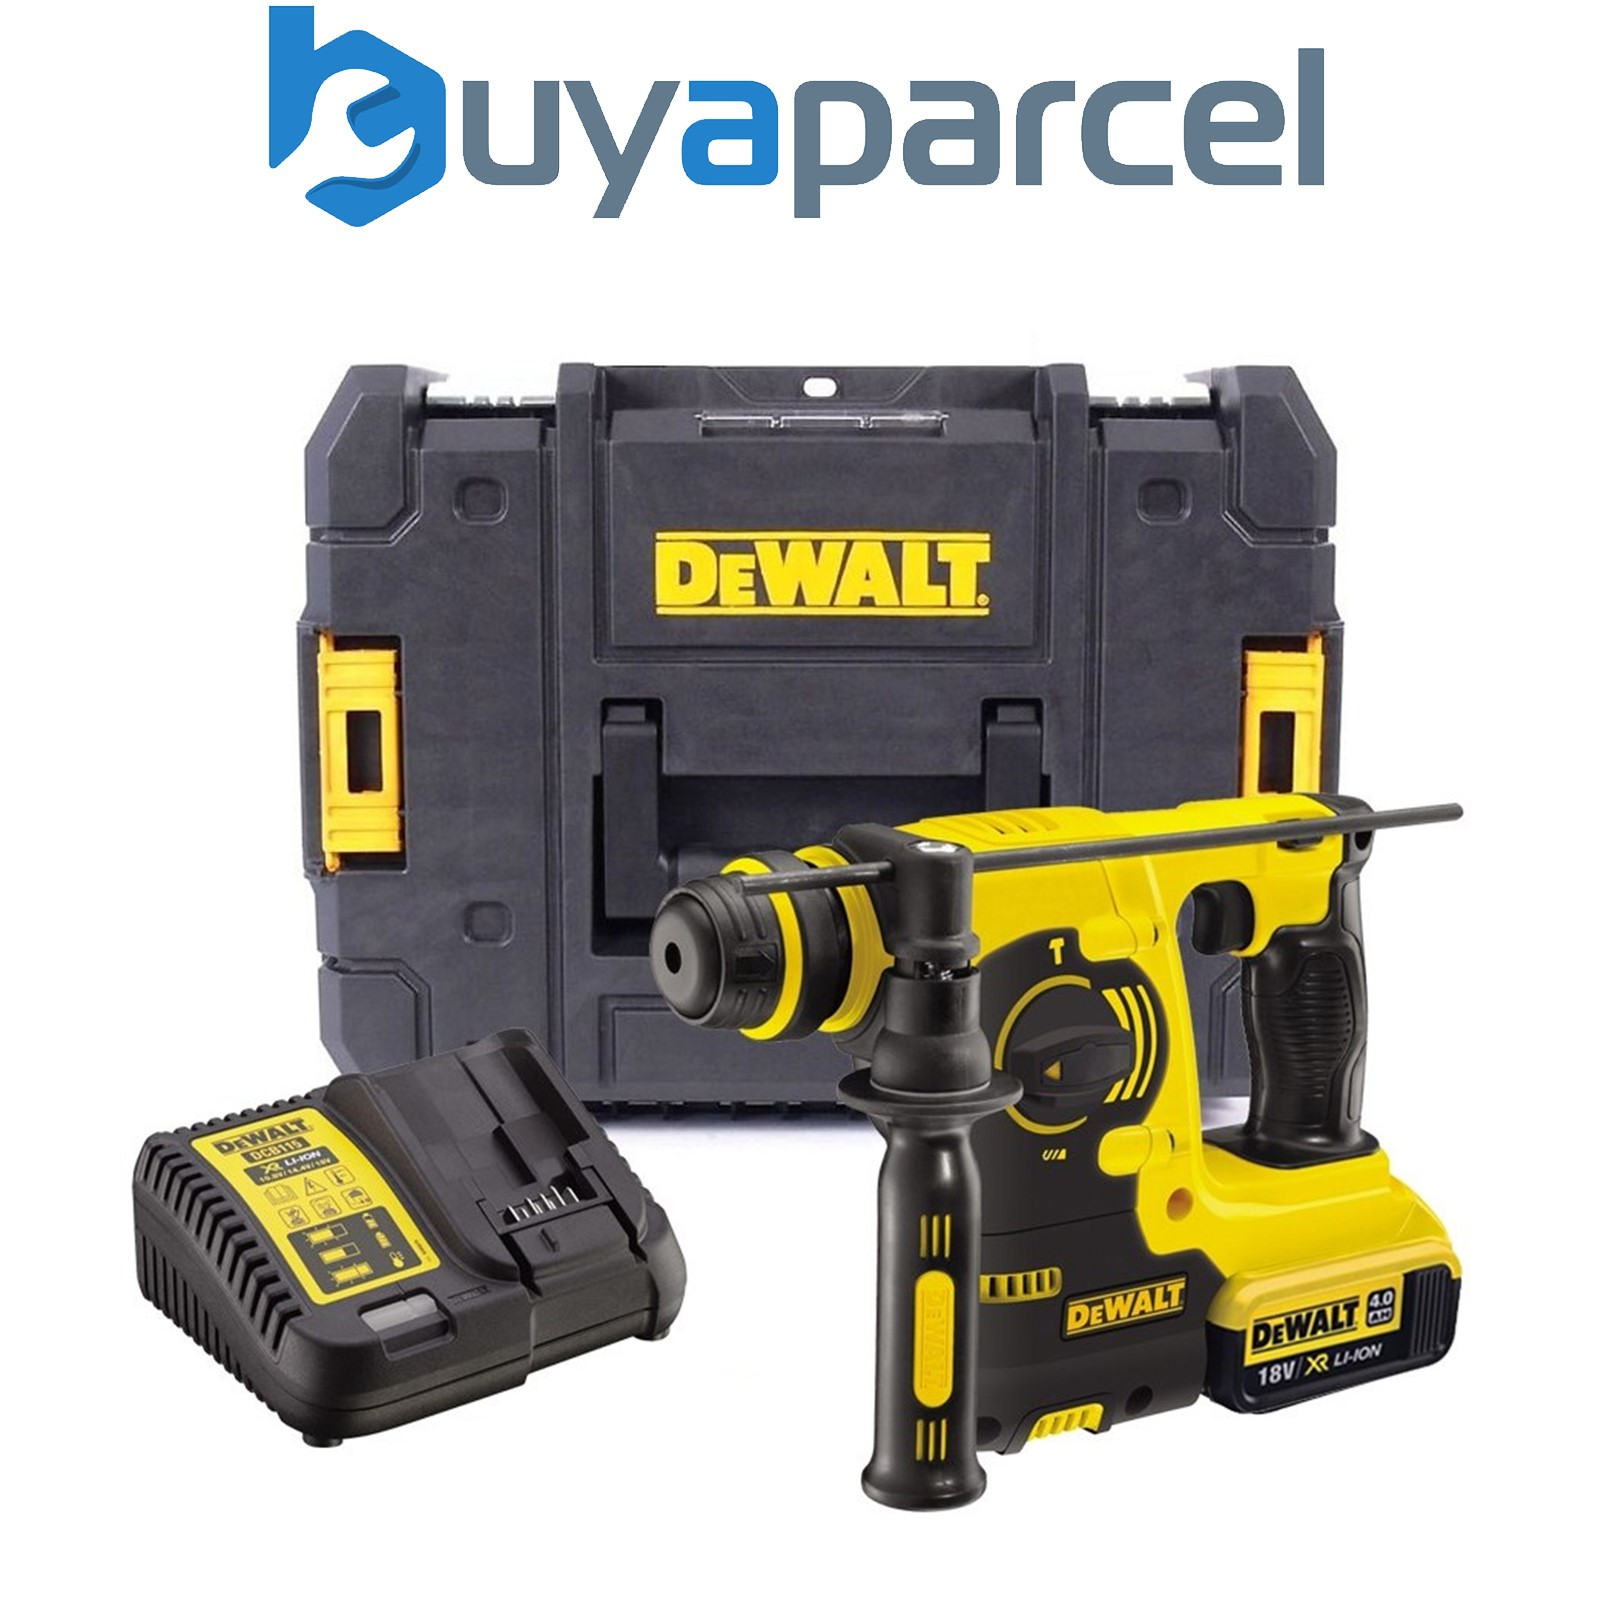 dewalt dch253m1 18v 3kg sds perforateur rotation 1 x 4. Black Bedroom Furniture Sets. Home Design Ideas